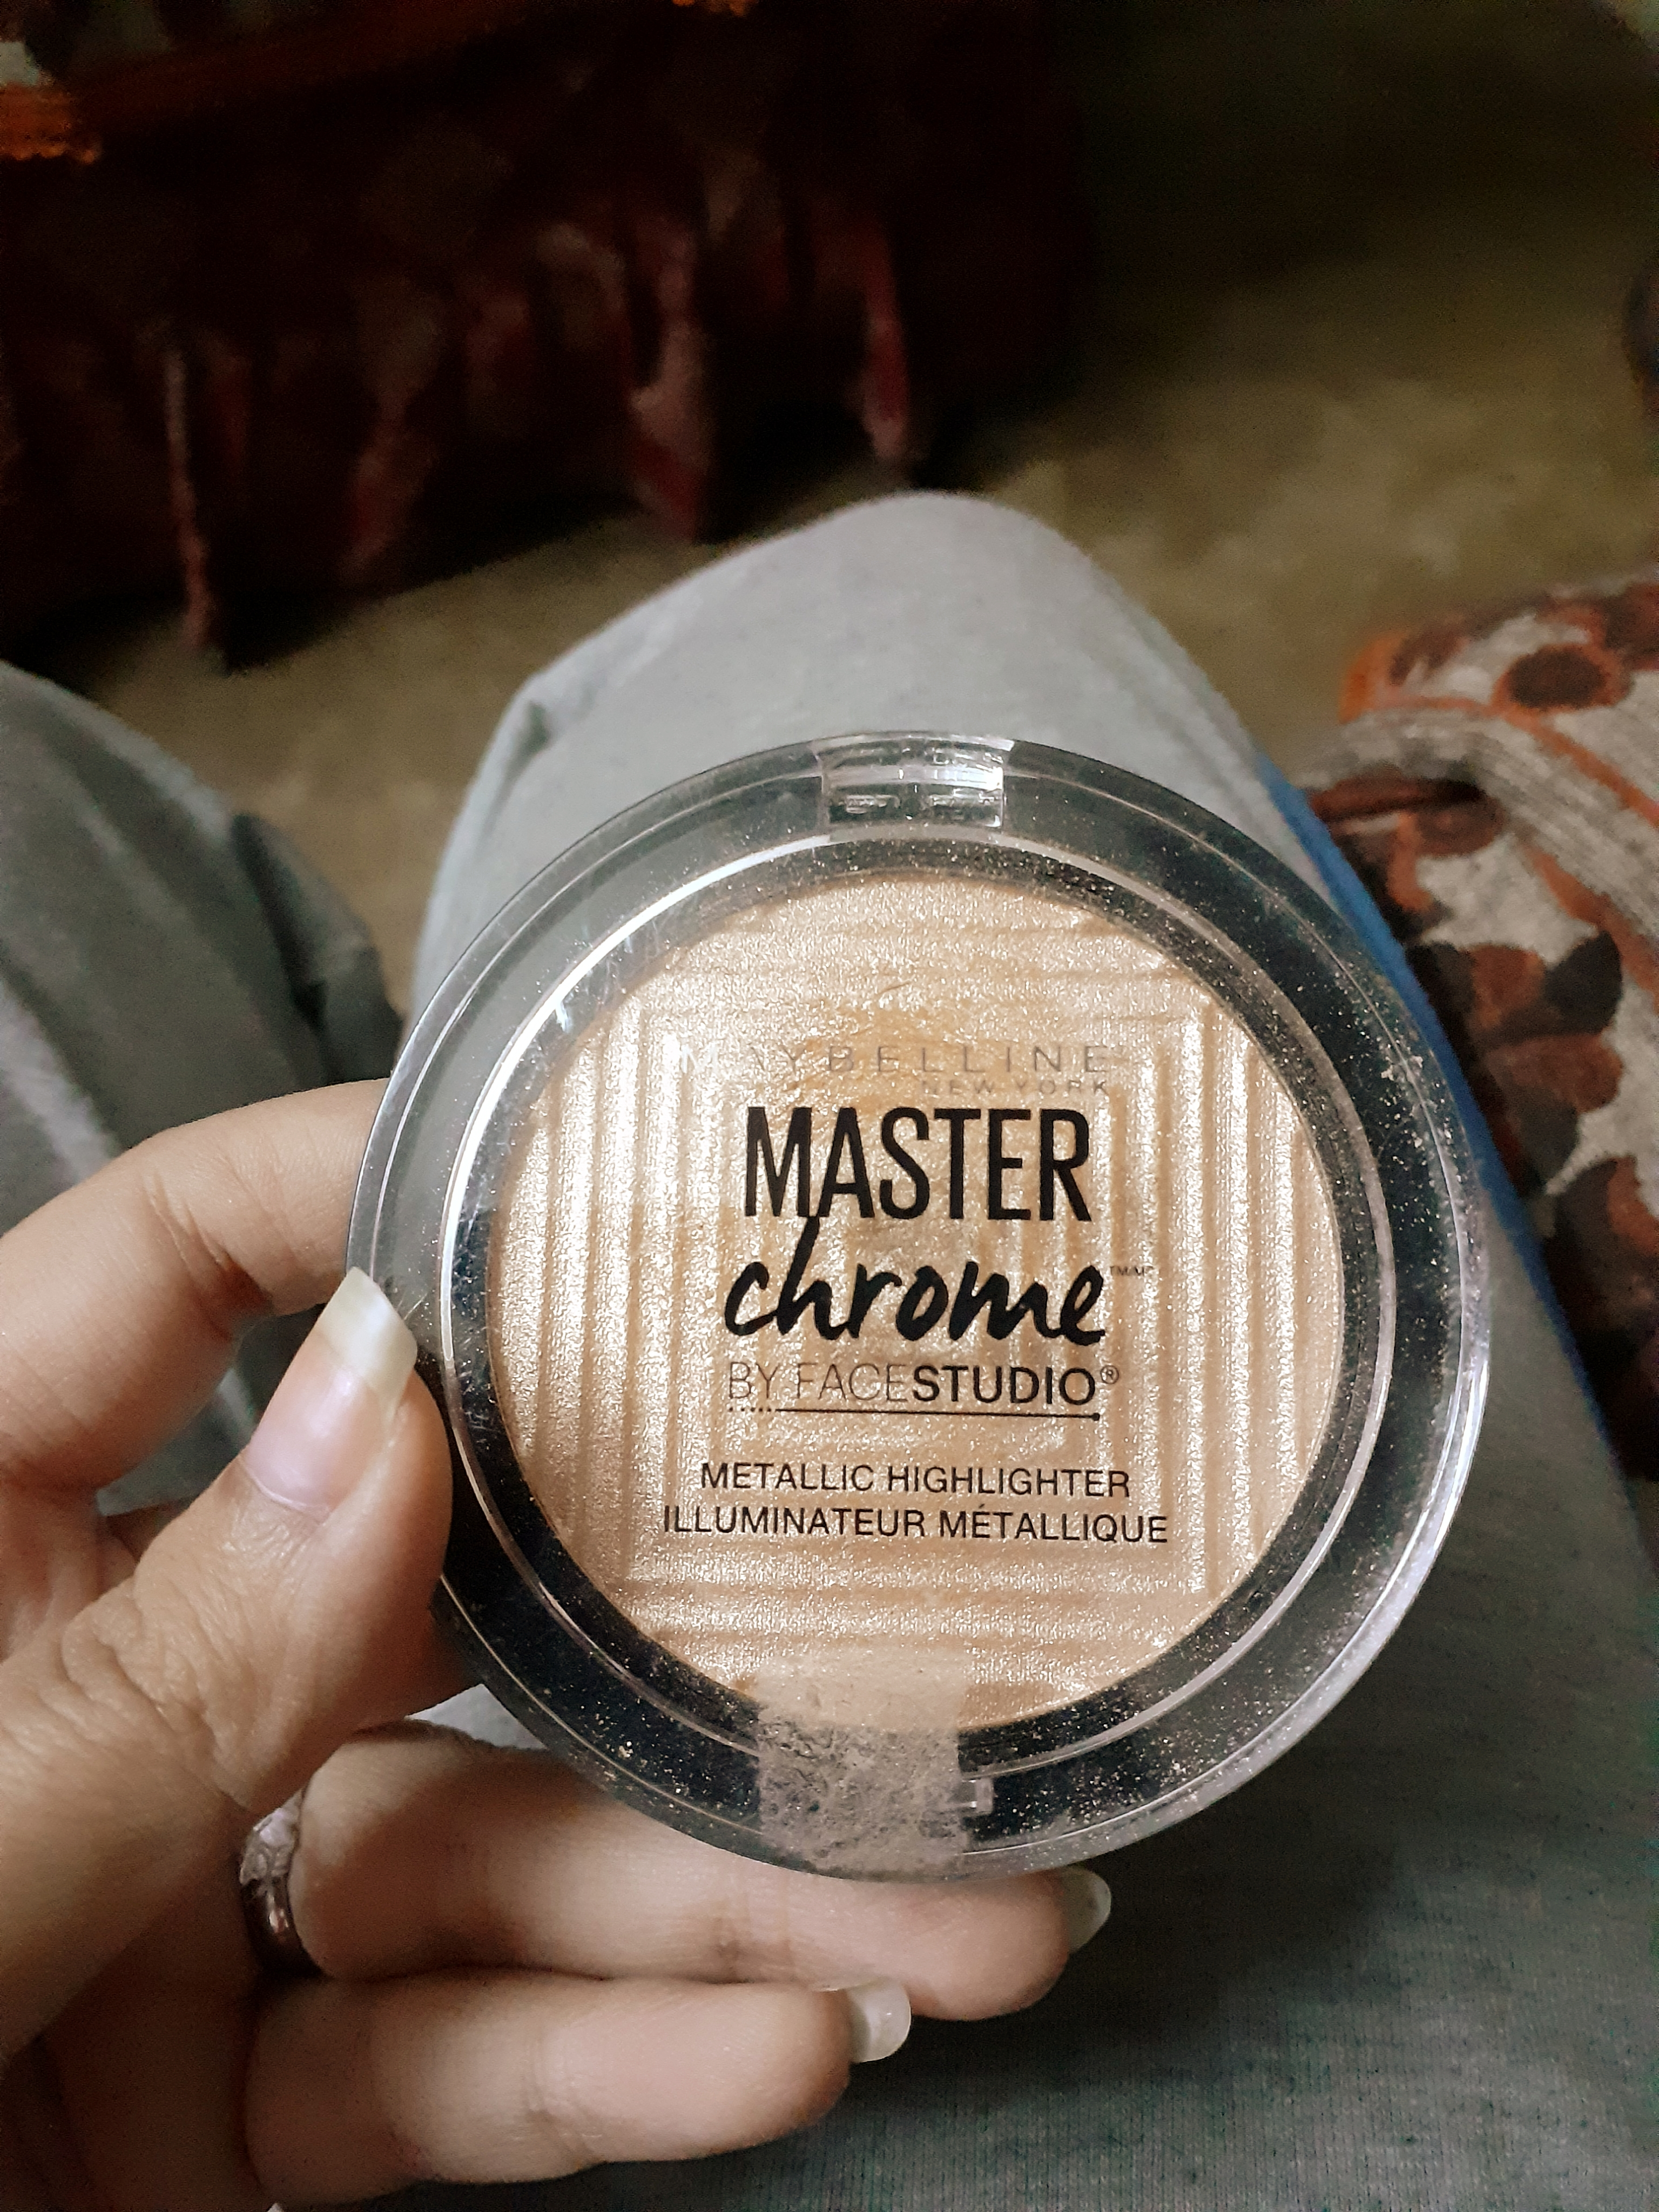 Maybelline Facestudio Master Chrome Metallic Highlighter -The best highlighter-By madhurima7